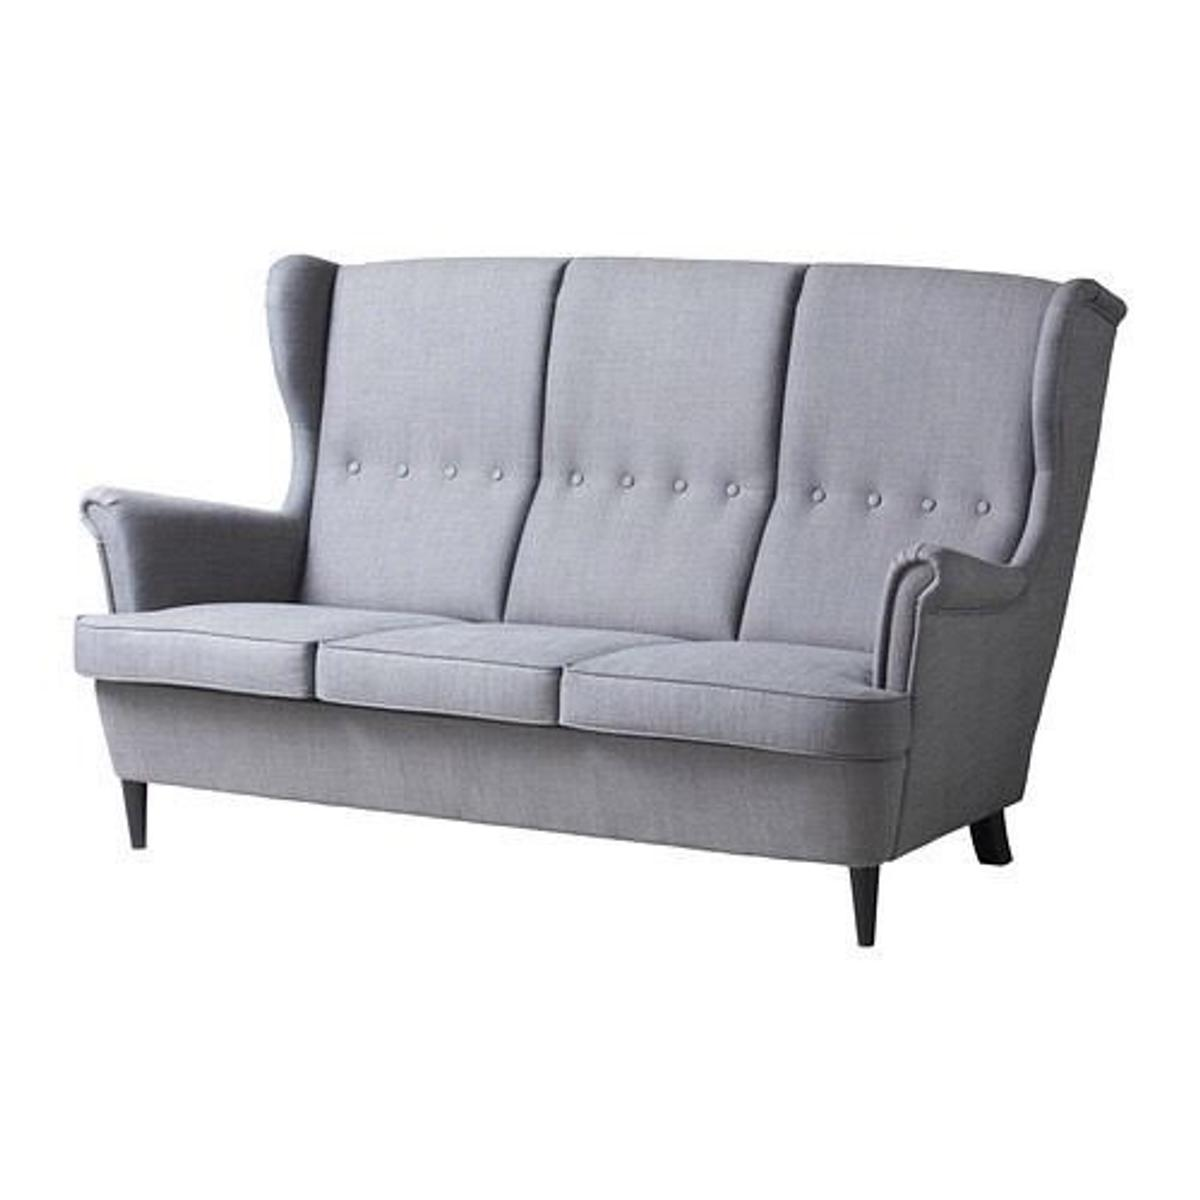 Ikea Strandmon Sofa Grau Svanby Couch In 04329 Leipzig Fur 425 00